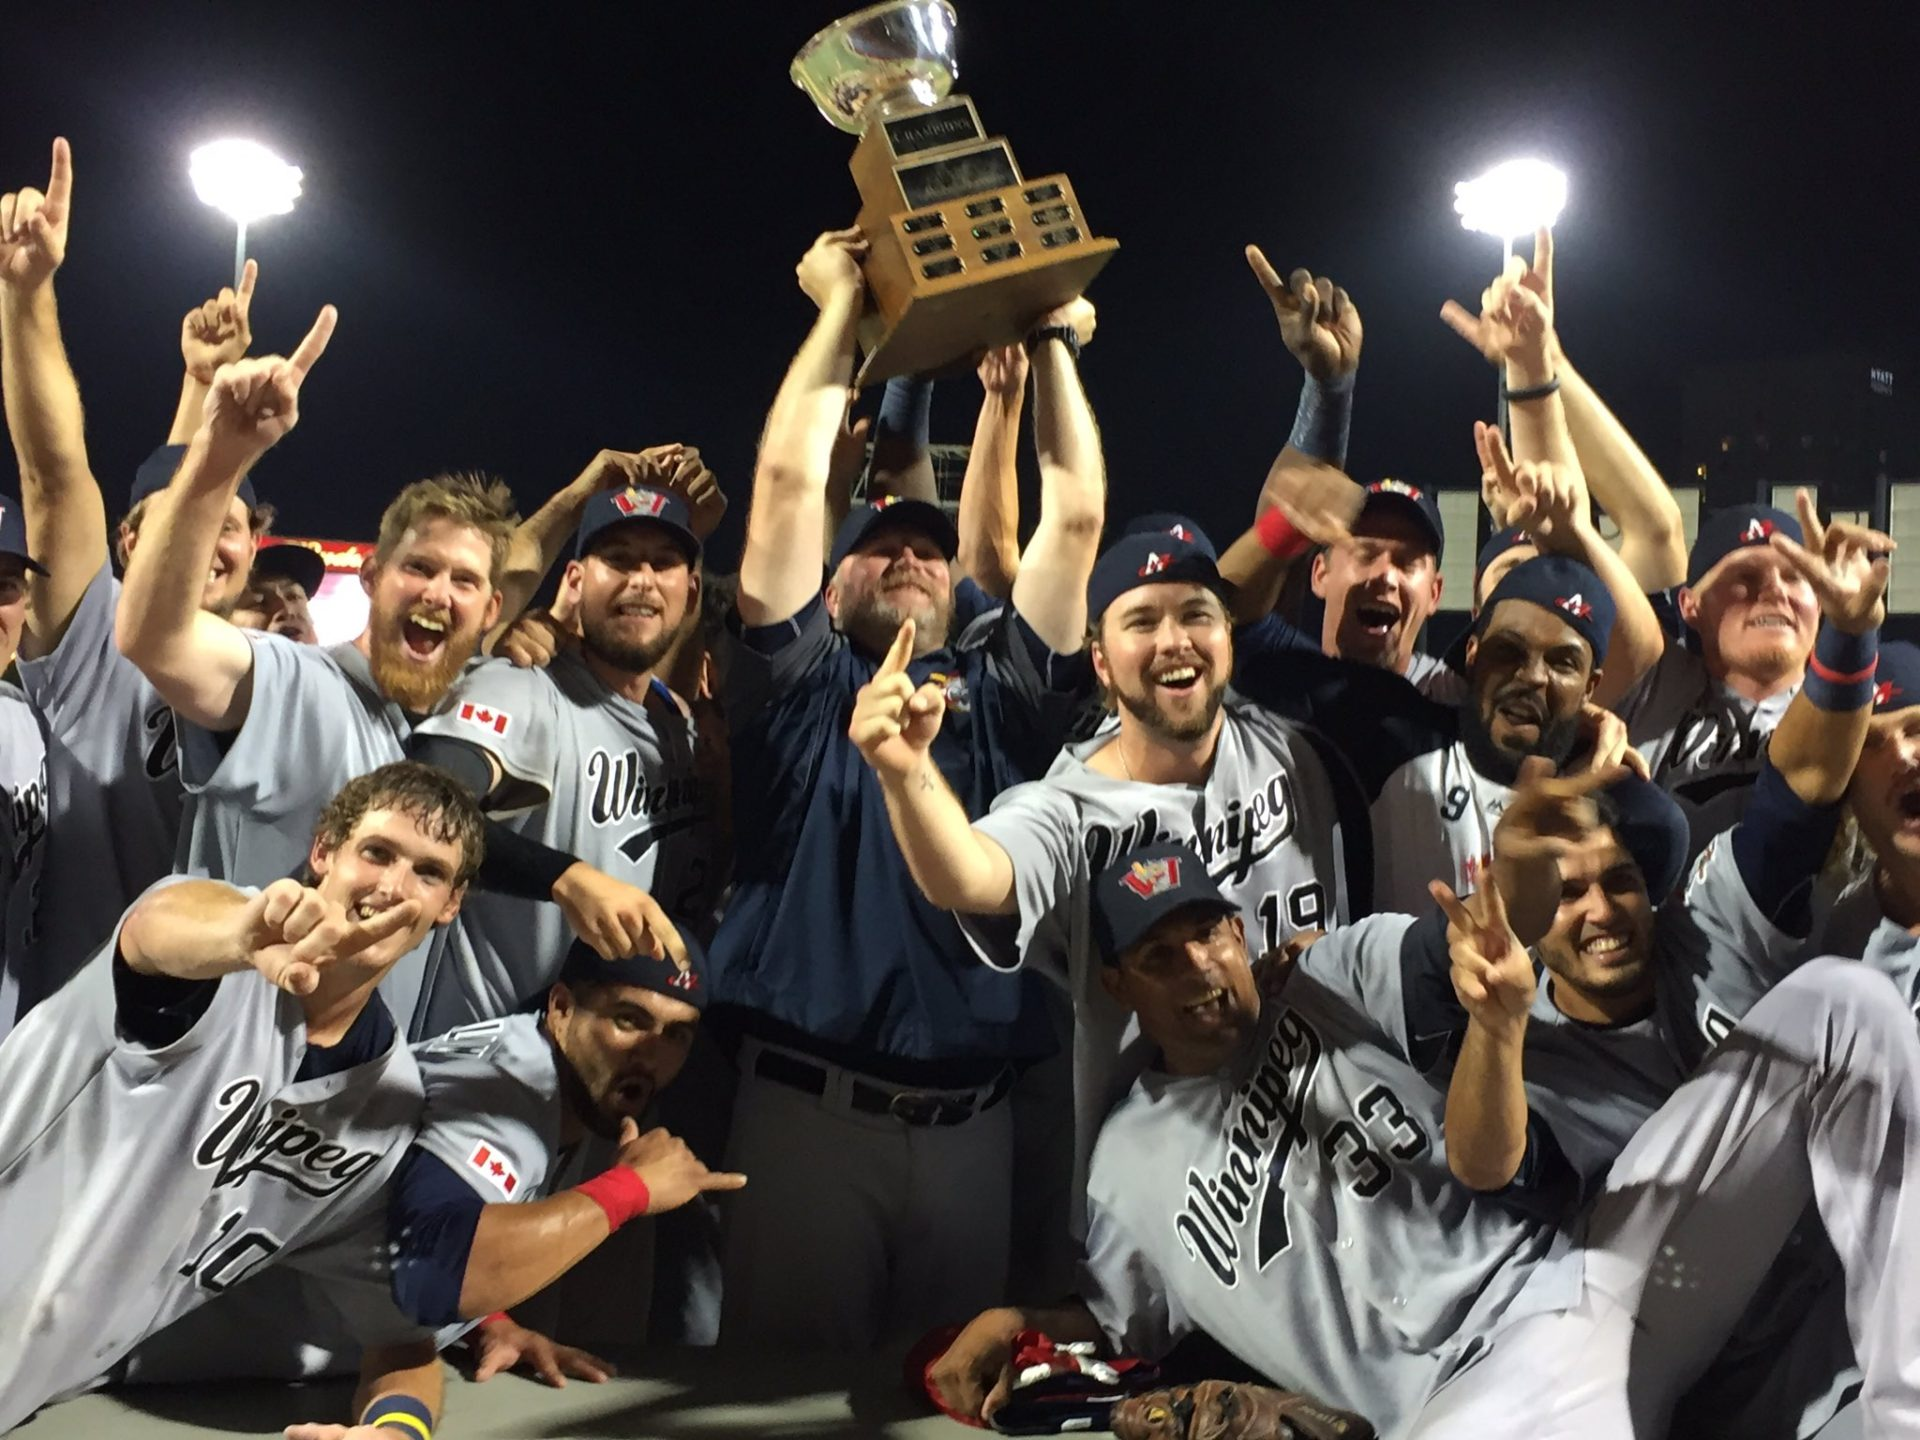 Goldeyes Are Champions!